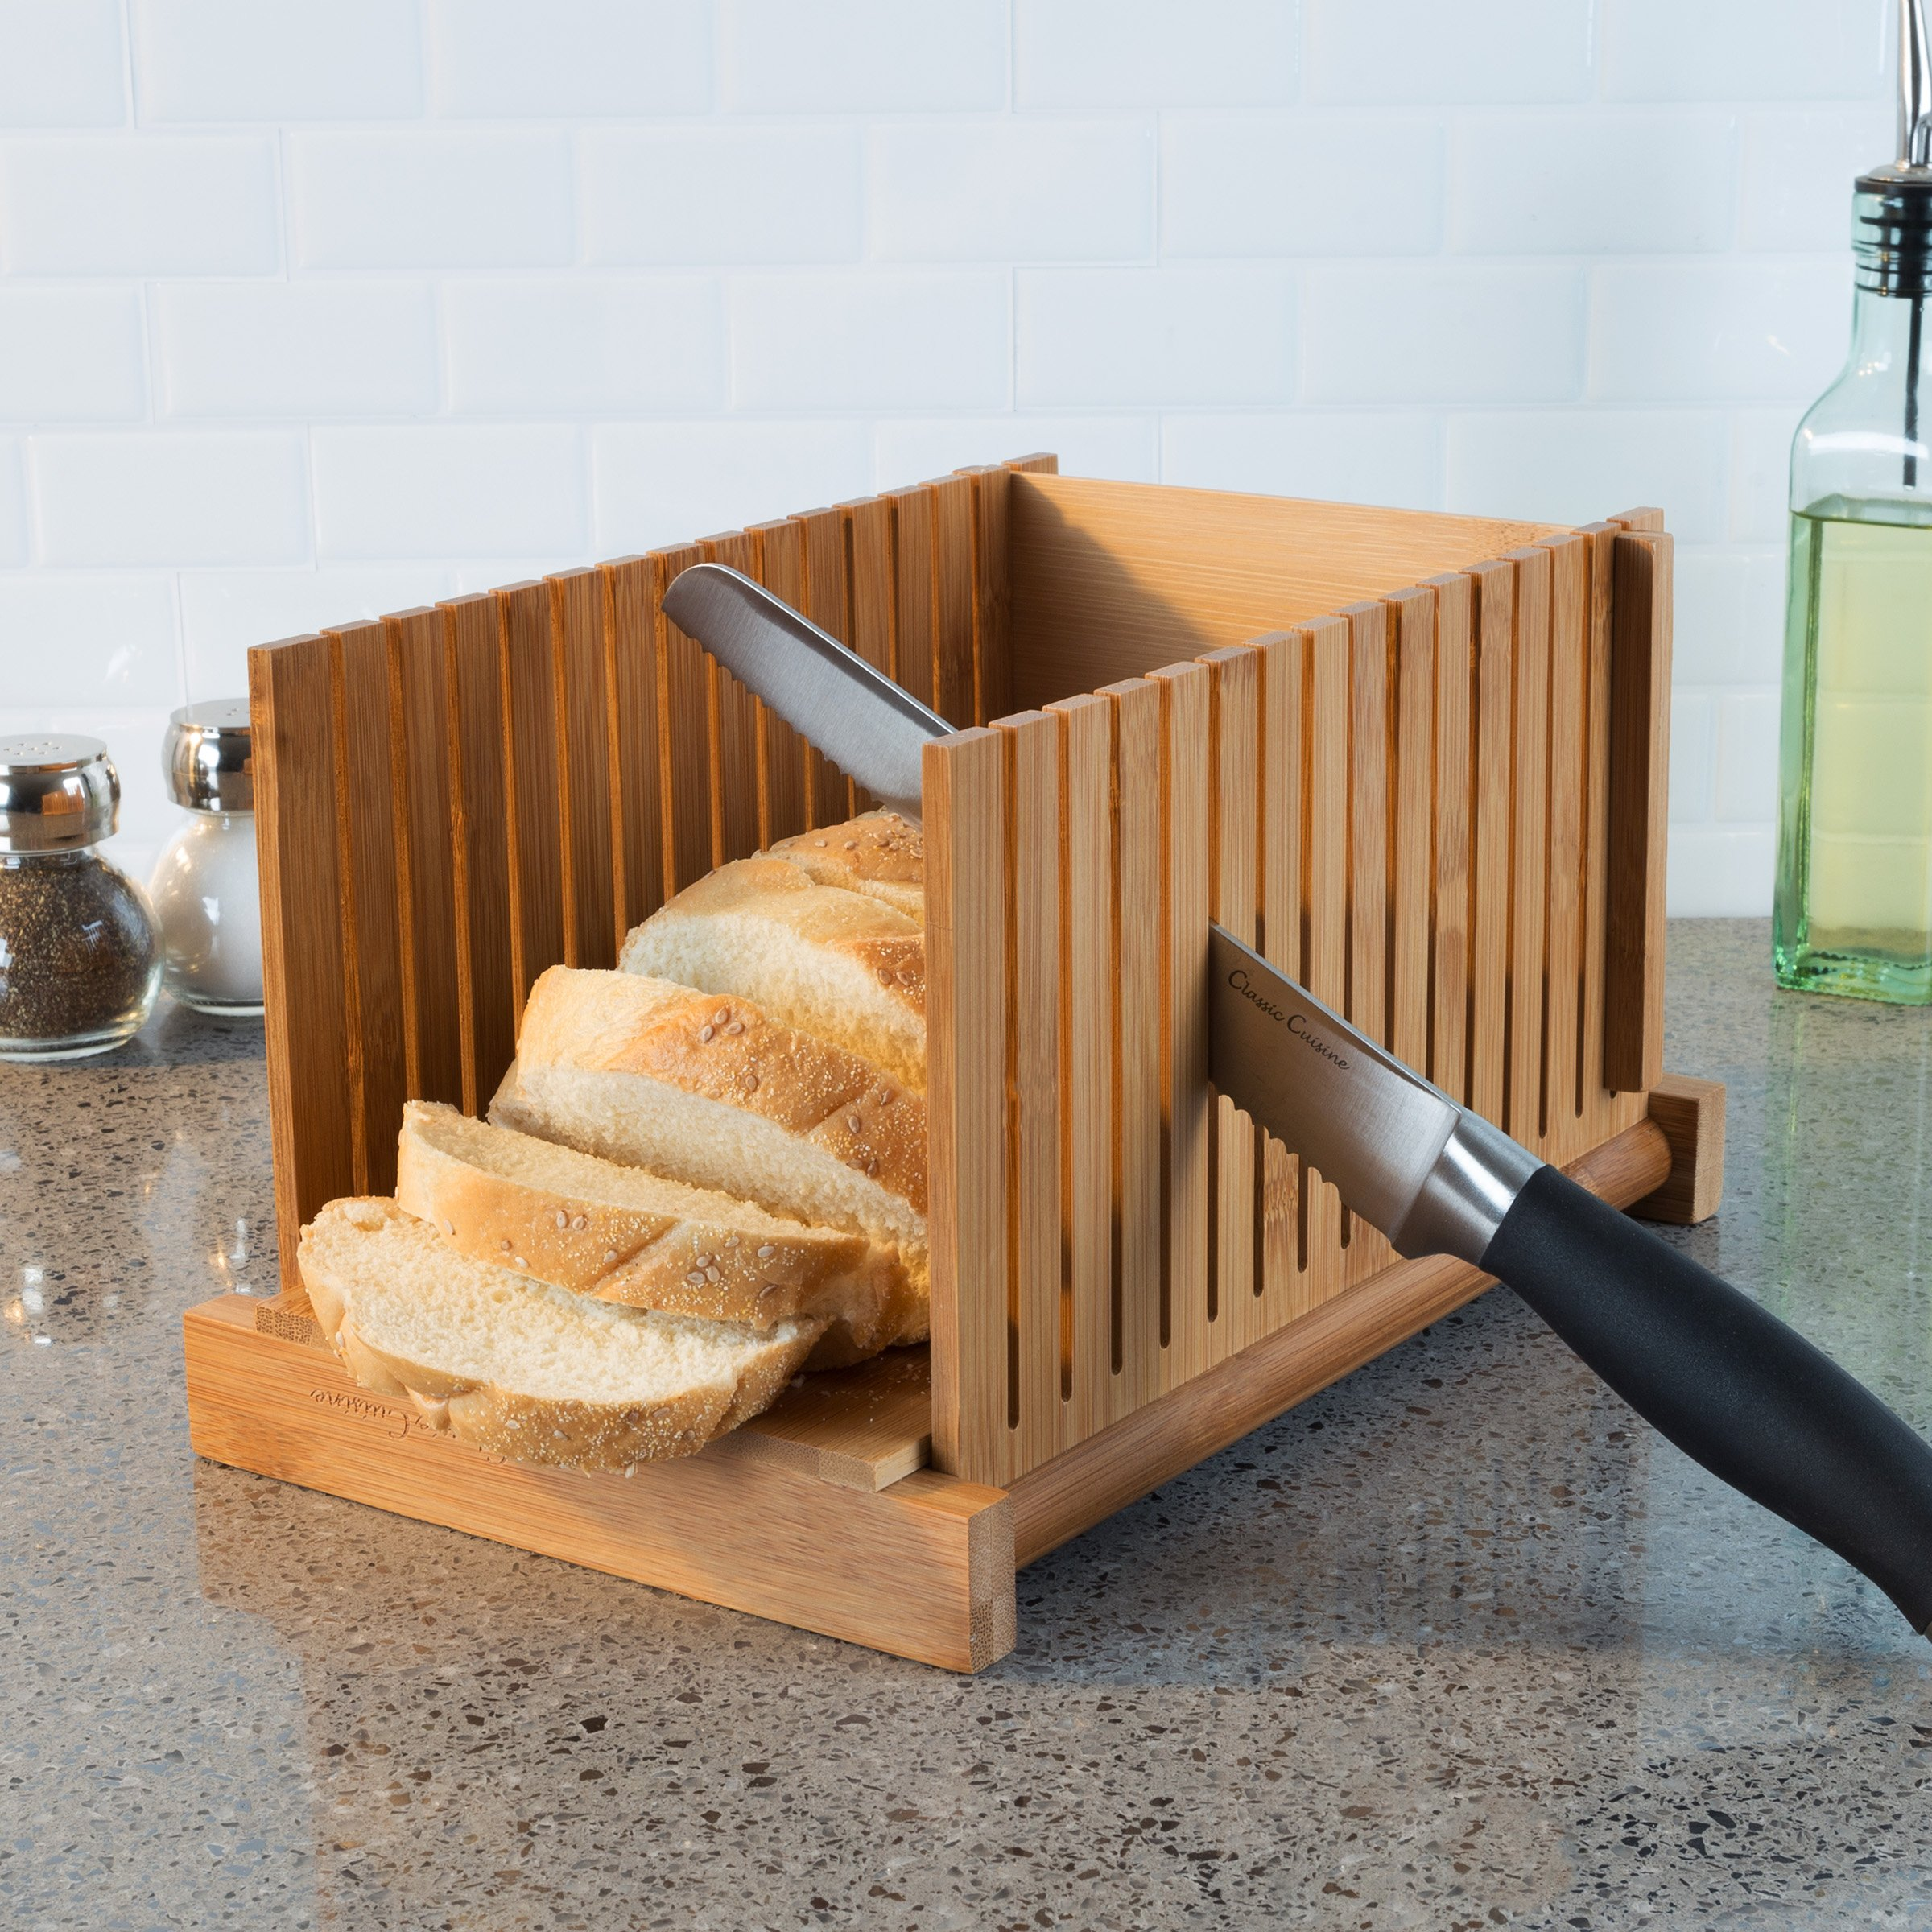 Classic Cuisine 82-KIT1064 Bamboo Bread Slicer Foldable, Adjustable Knife Guide and Board for Cutting Loaves Evenly-Perfect Food Prep Tool for Home Bakers